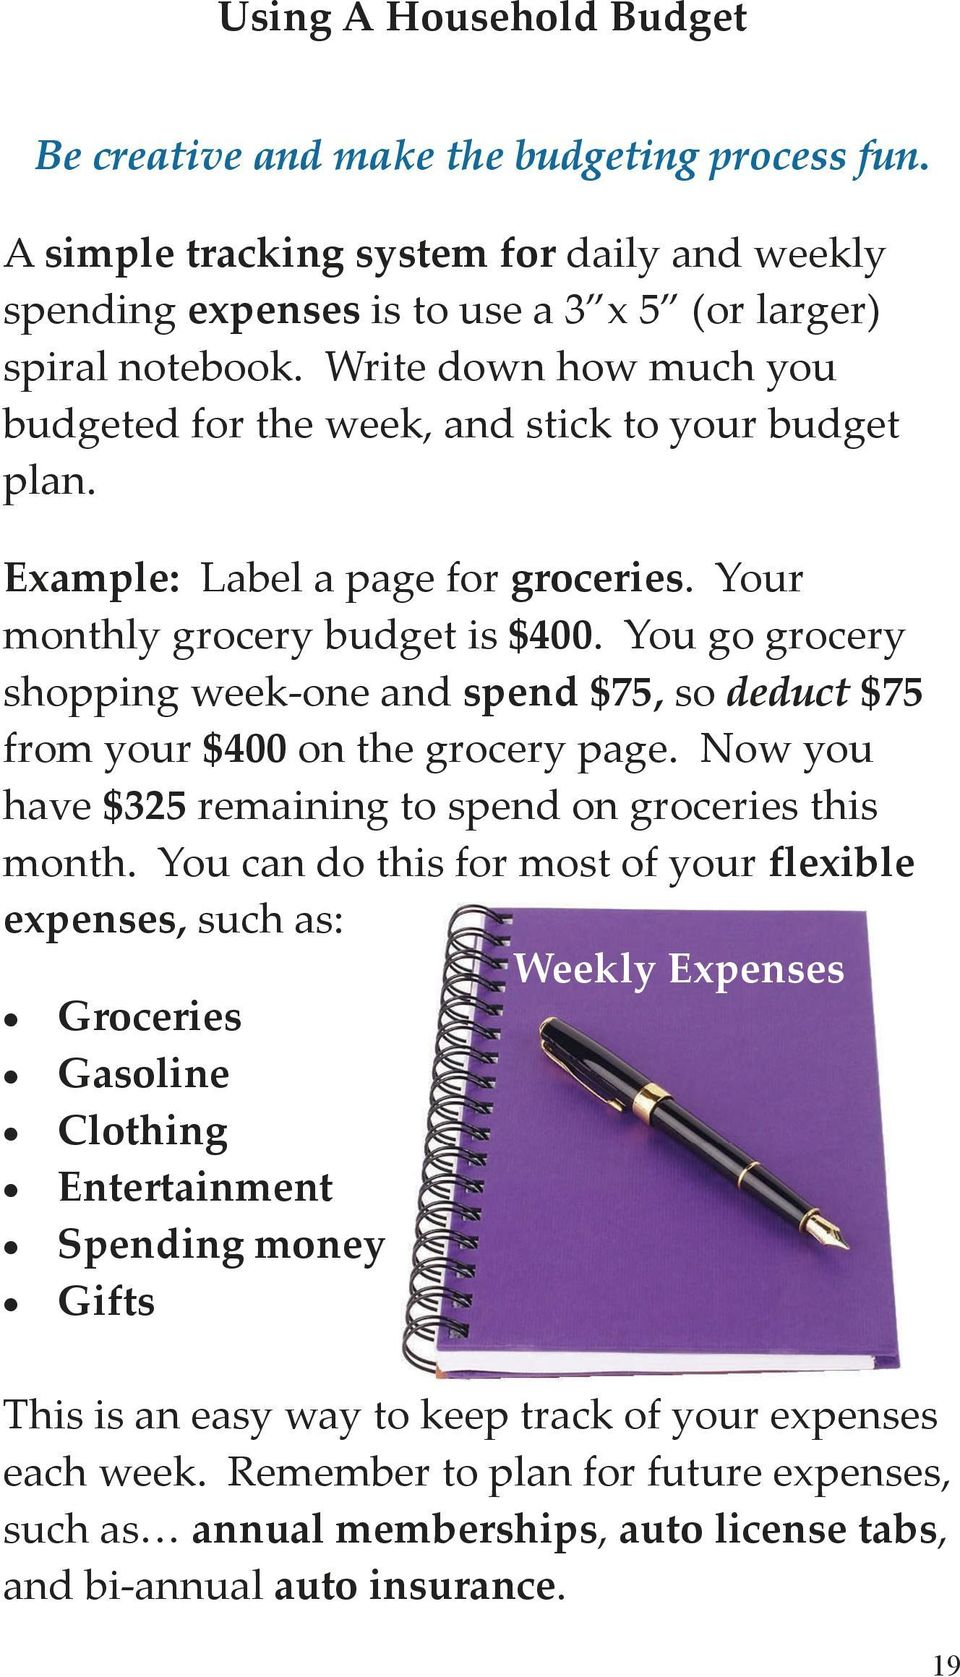 You go grocery shopping week one and spend $75, so deduct $75 from your $400 on the grocery page. Now you have $325 remaining to spend on groceries this month.